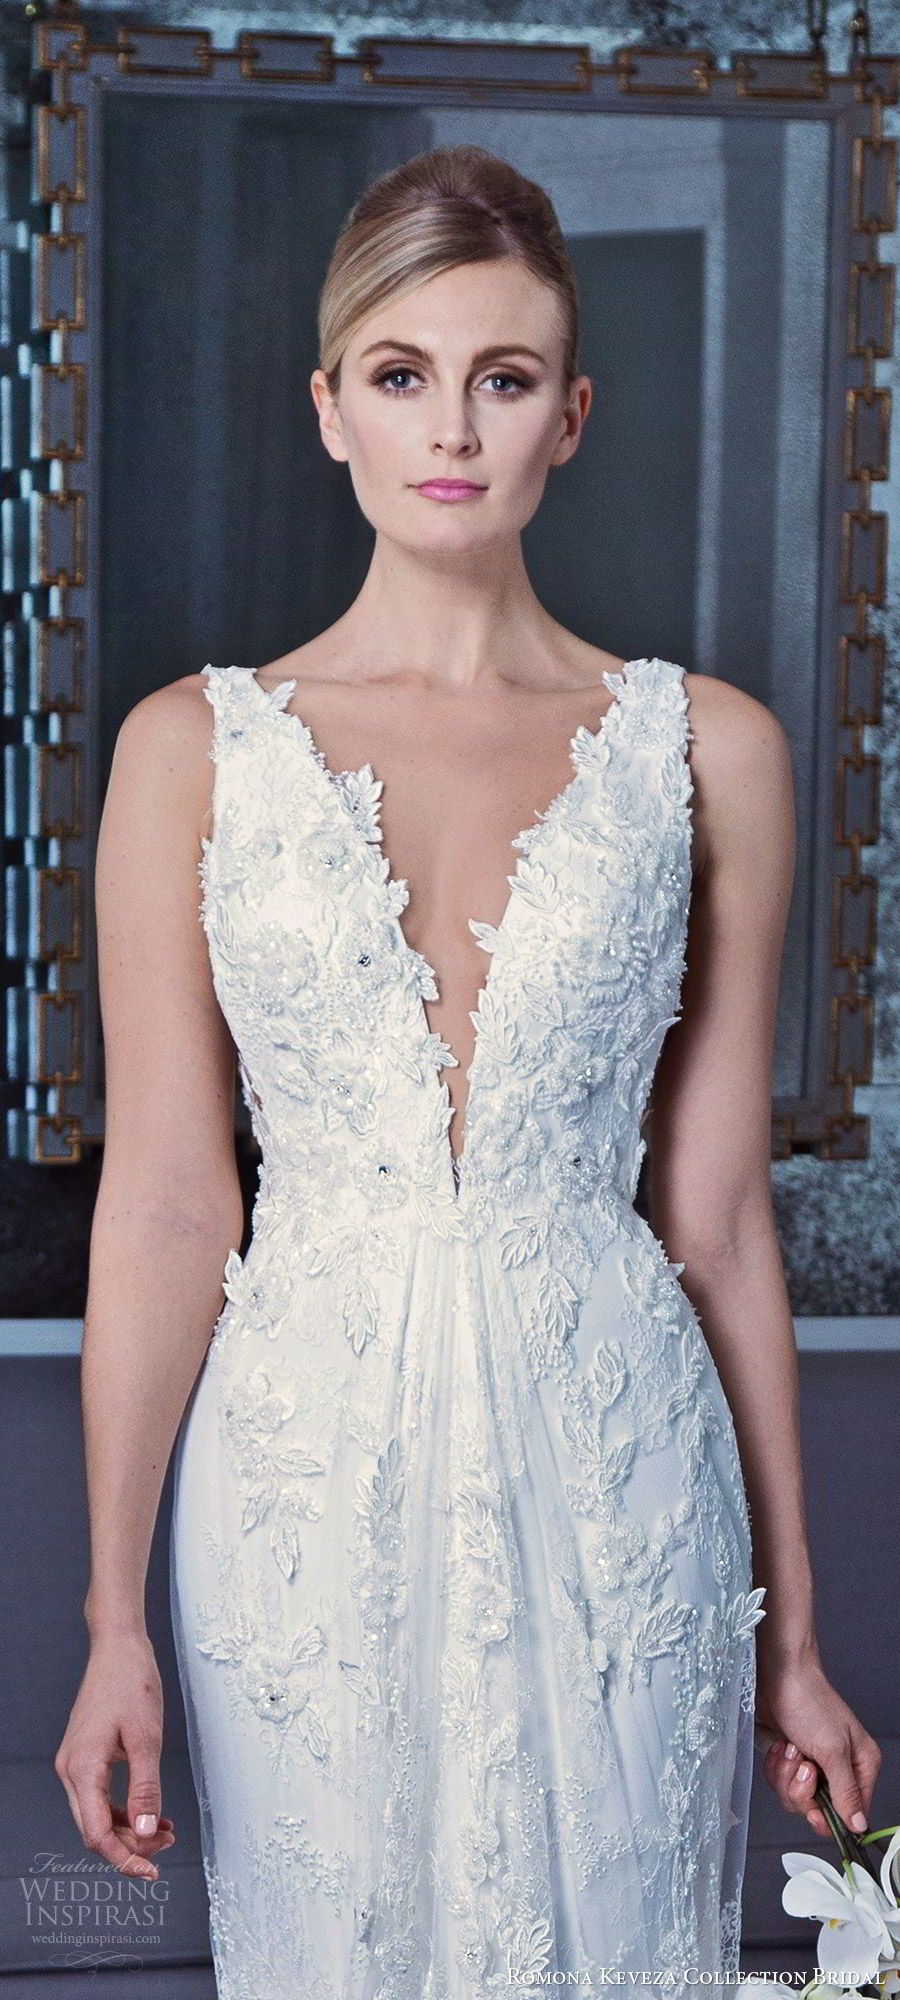 Lace wedding dress for short person january 2019 Romona Keveza Collection Bridal Fall  Wedding Dresses  Bodas